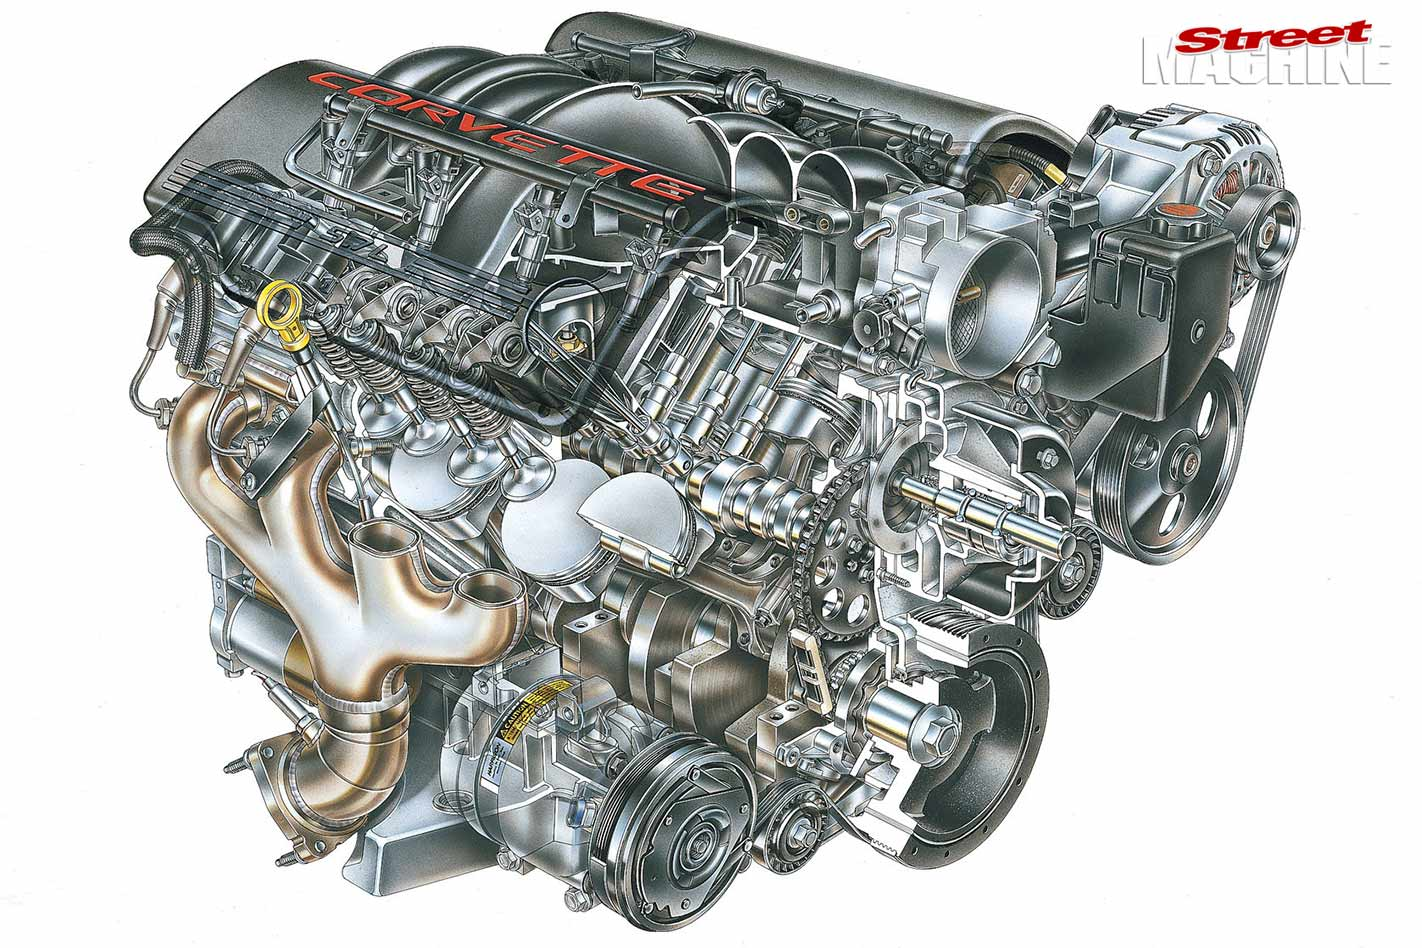 ls engine variants part one generation iiifrom the original 345hp (260kw) ls1 found in the c5 corvette, through to the 638hp (476kw) ls9 (the most powerful engine ever offered by gm in a production